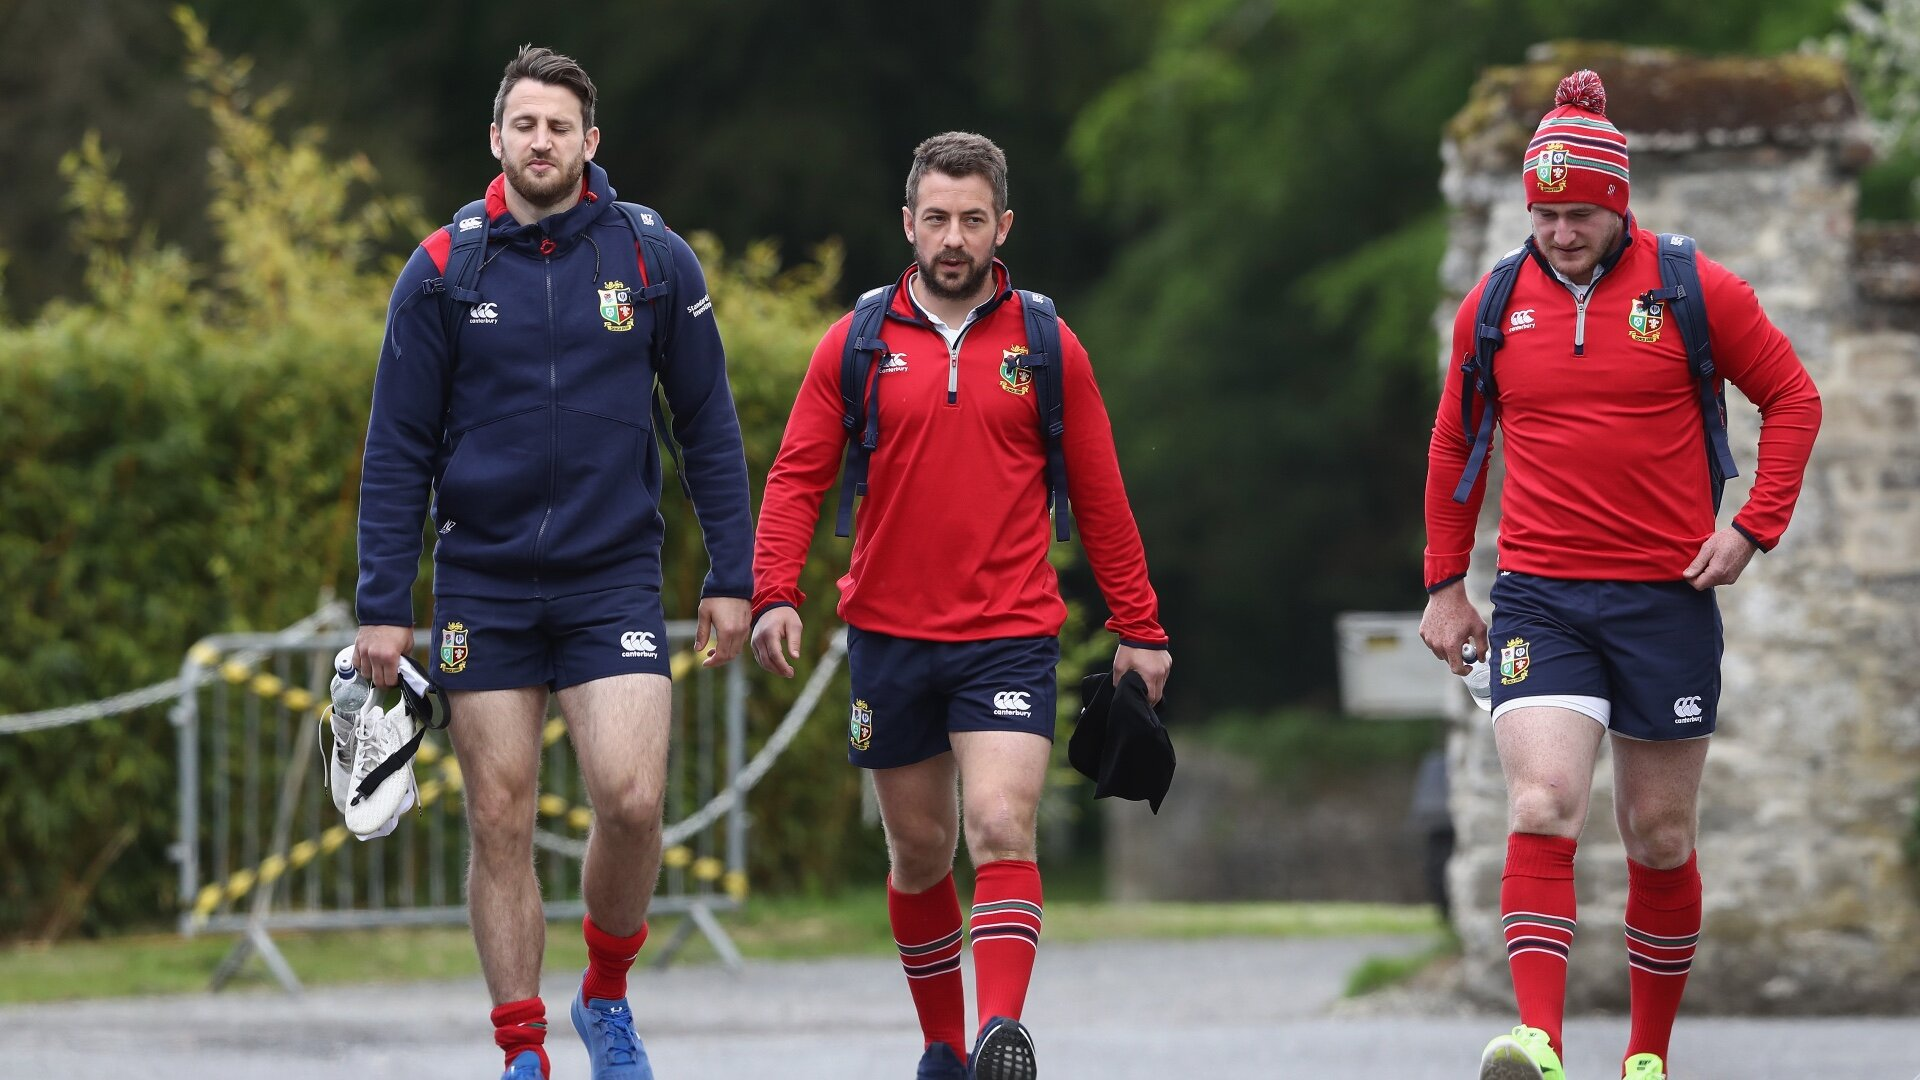 Gatland has just offered Scotland players an olive branch ahead of 2021 Lions